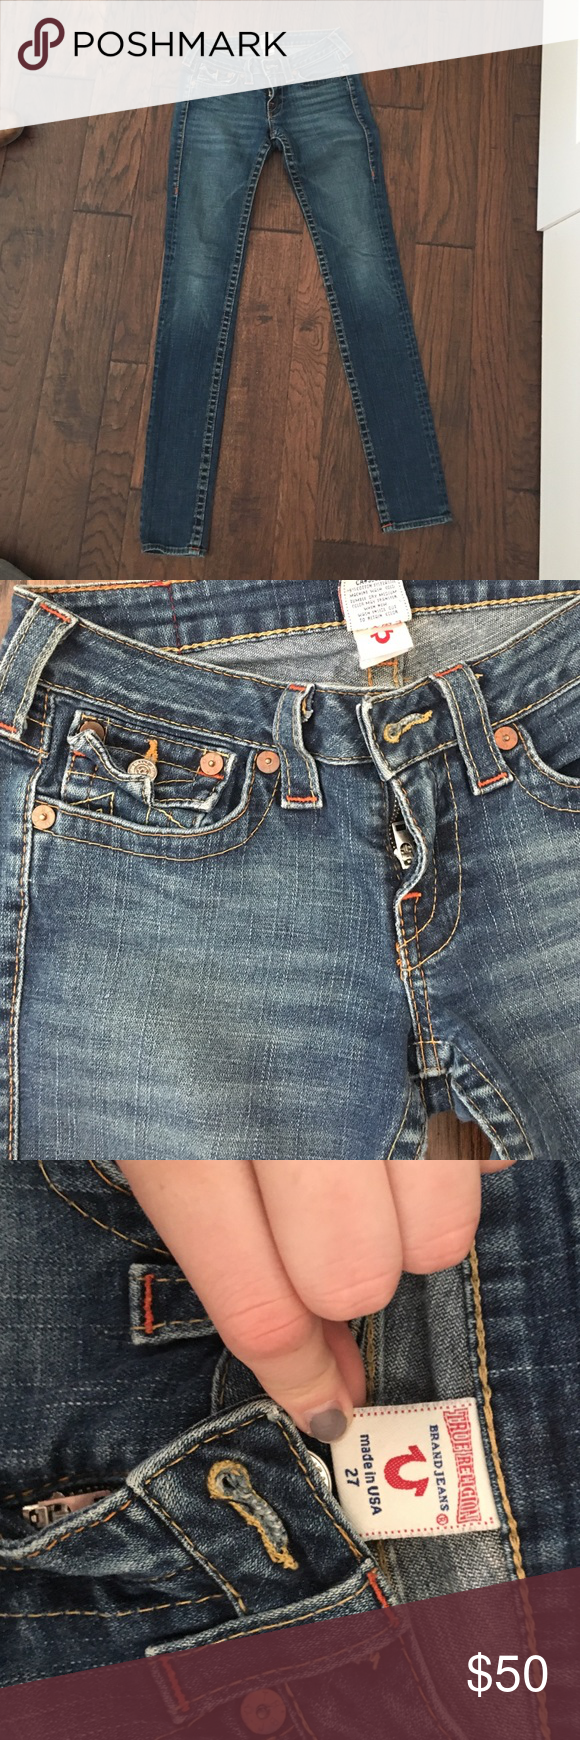 True religions jeans Great condition. Sad to see them go but they are too small on me. True Religion Jeans